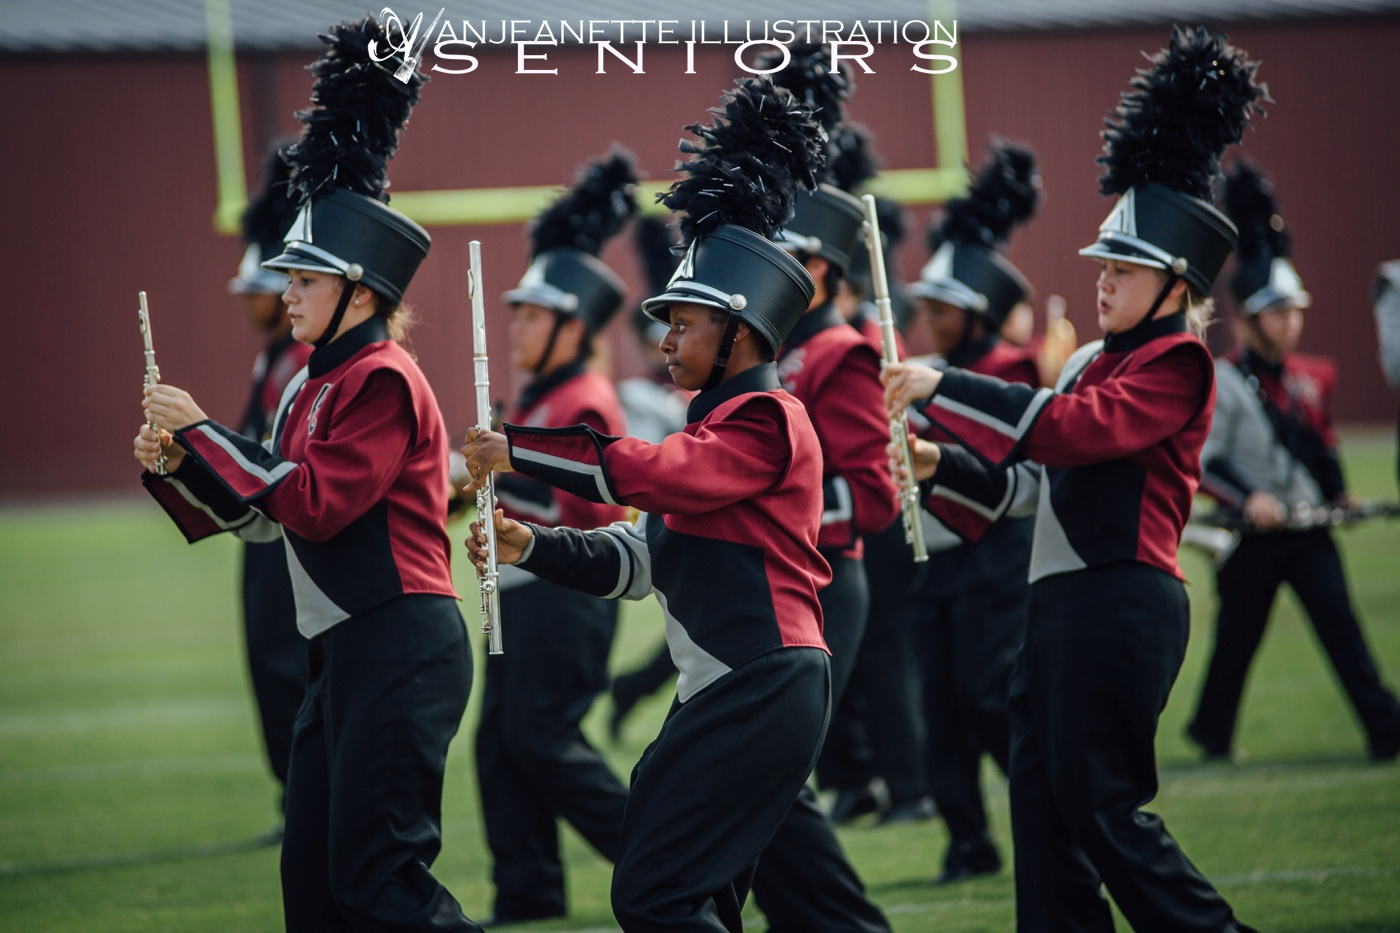 tennessee senior portraits anjeanette illustration hendersonville tn marching band invitational pictures station camp